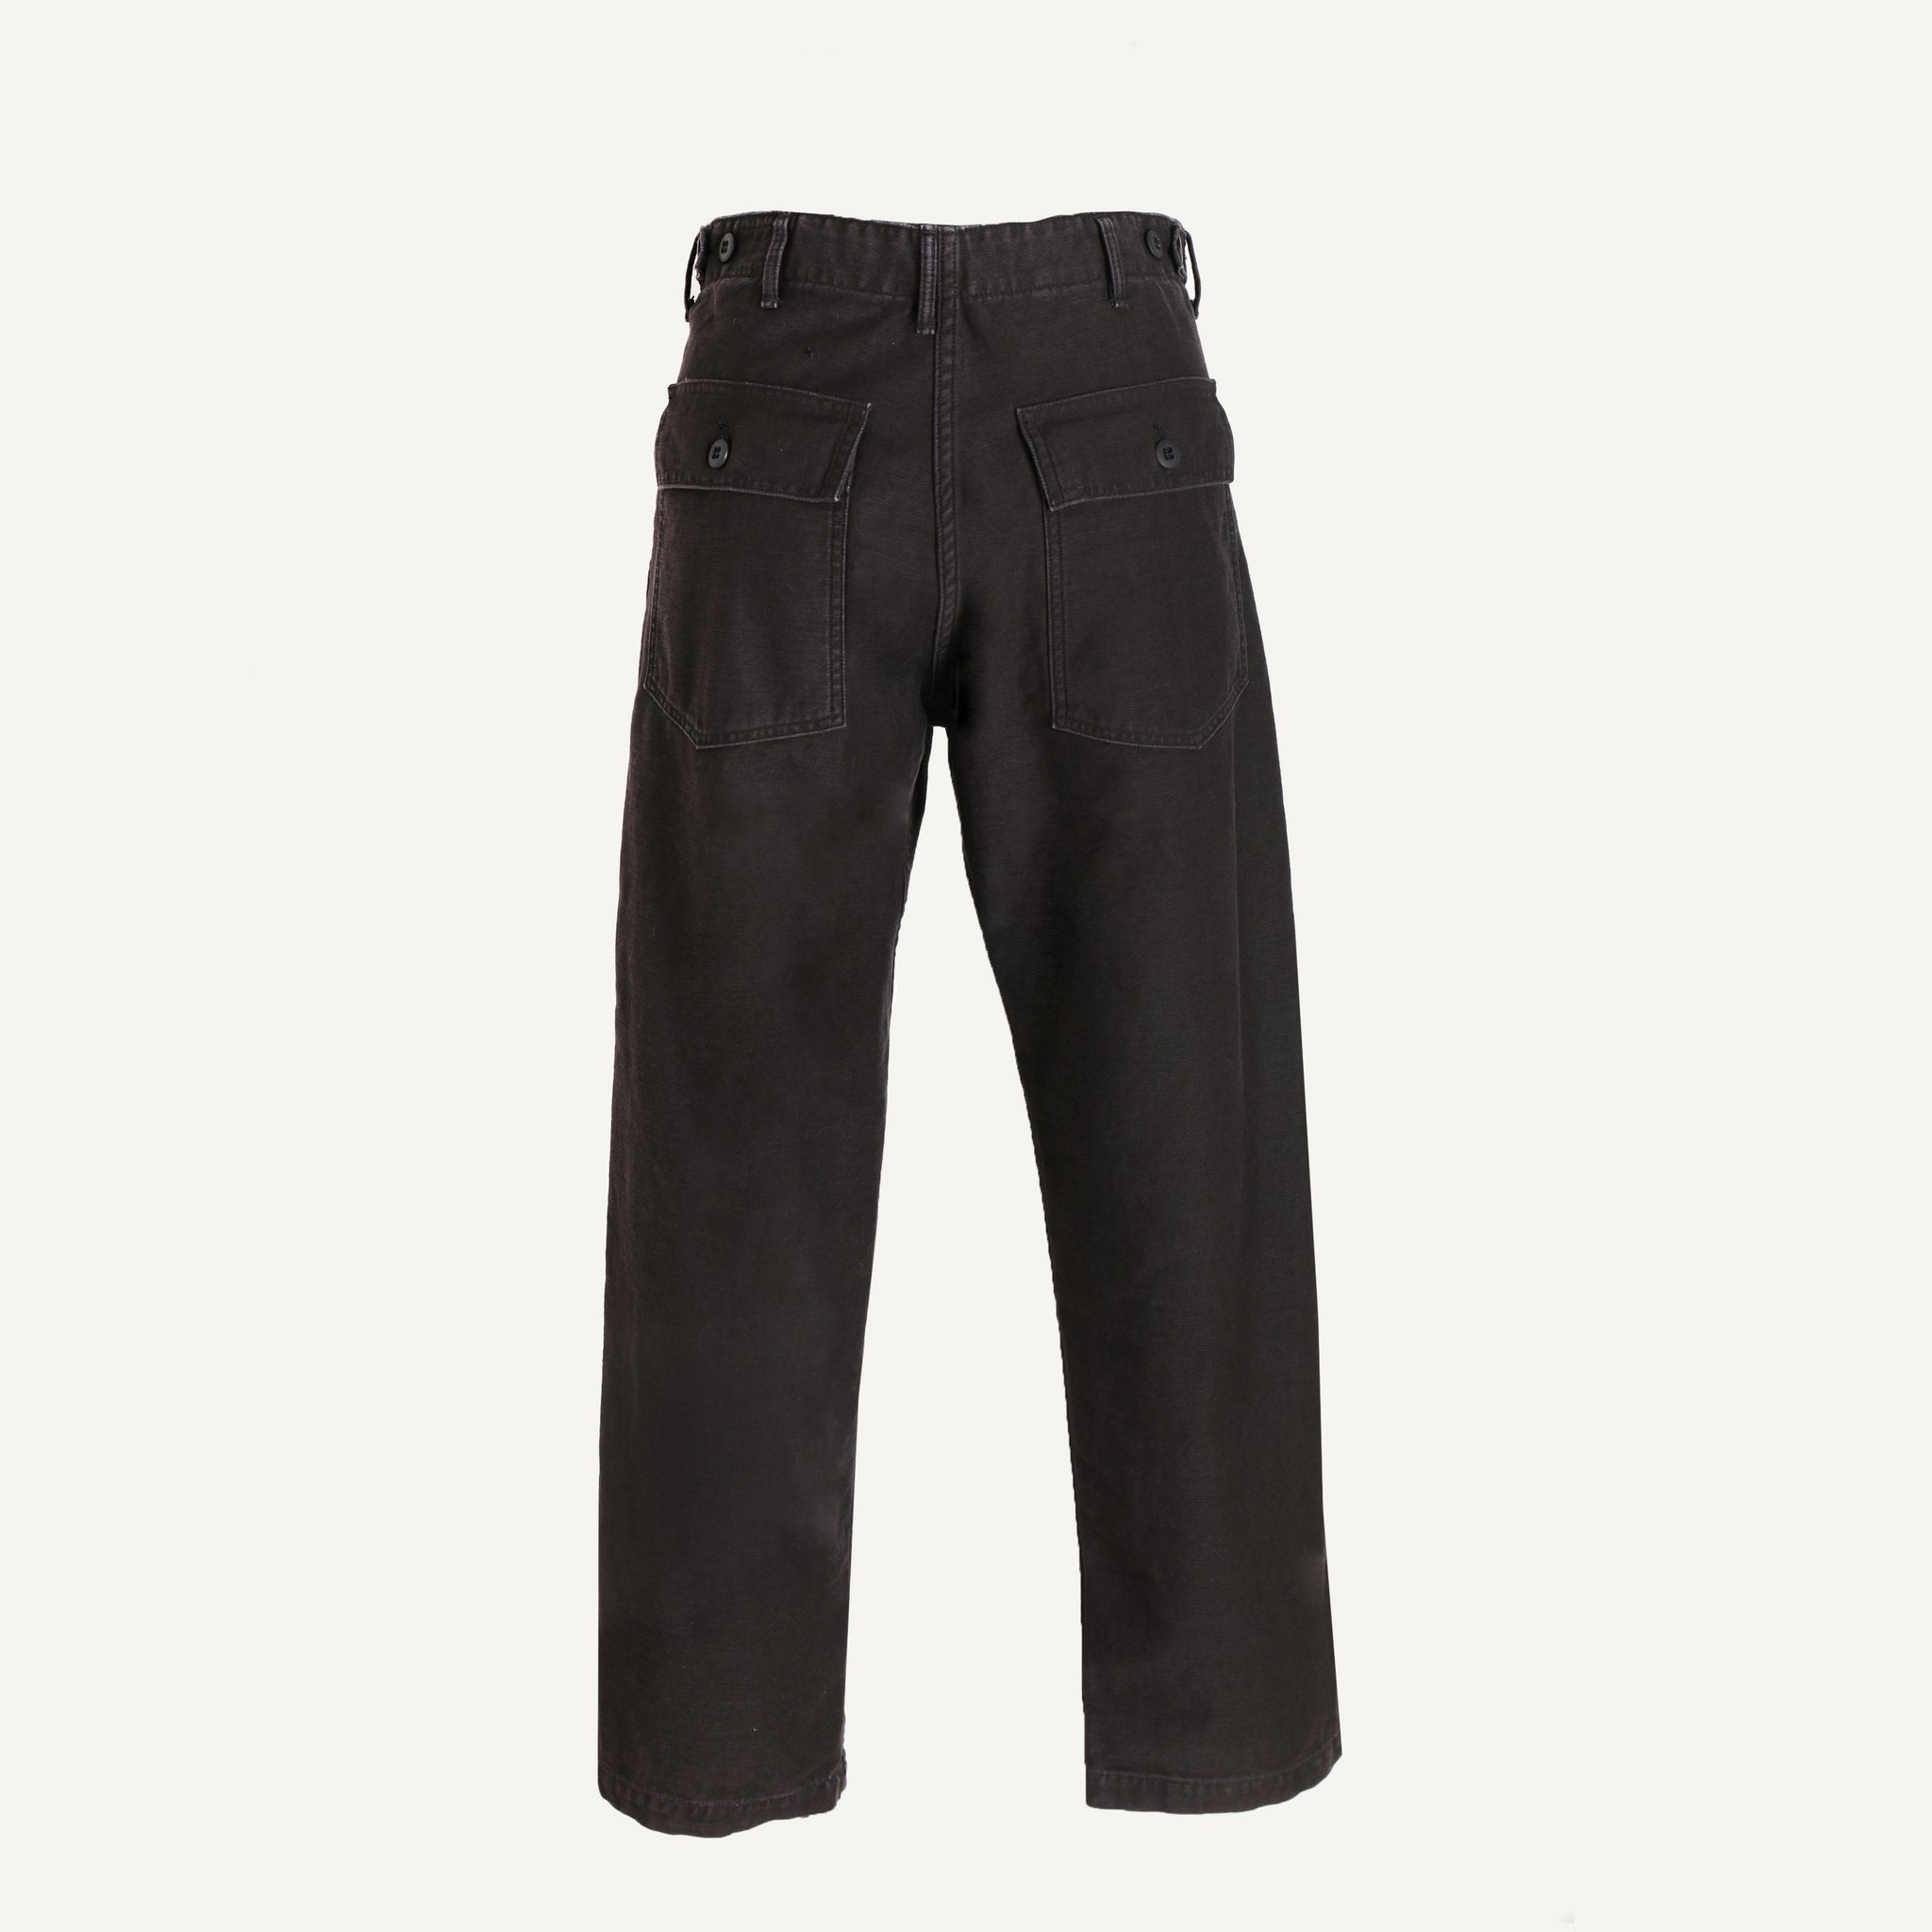 ORSLOW WASHED WORK PANTS